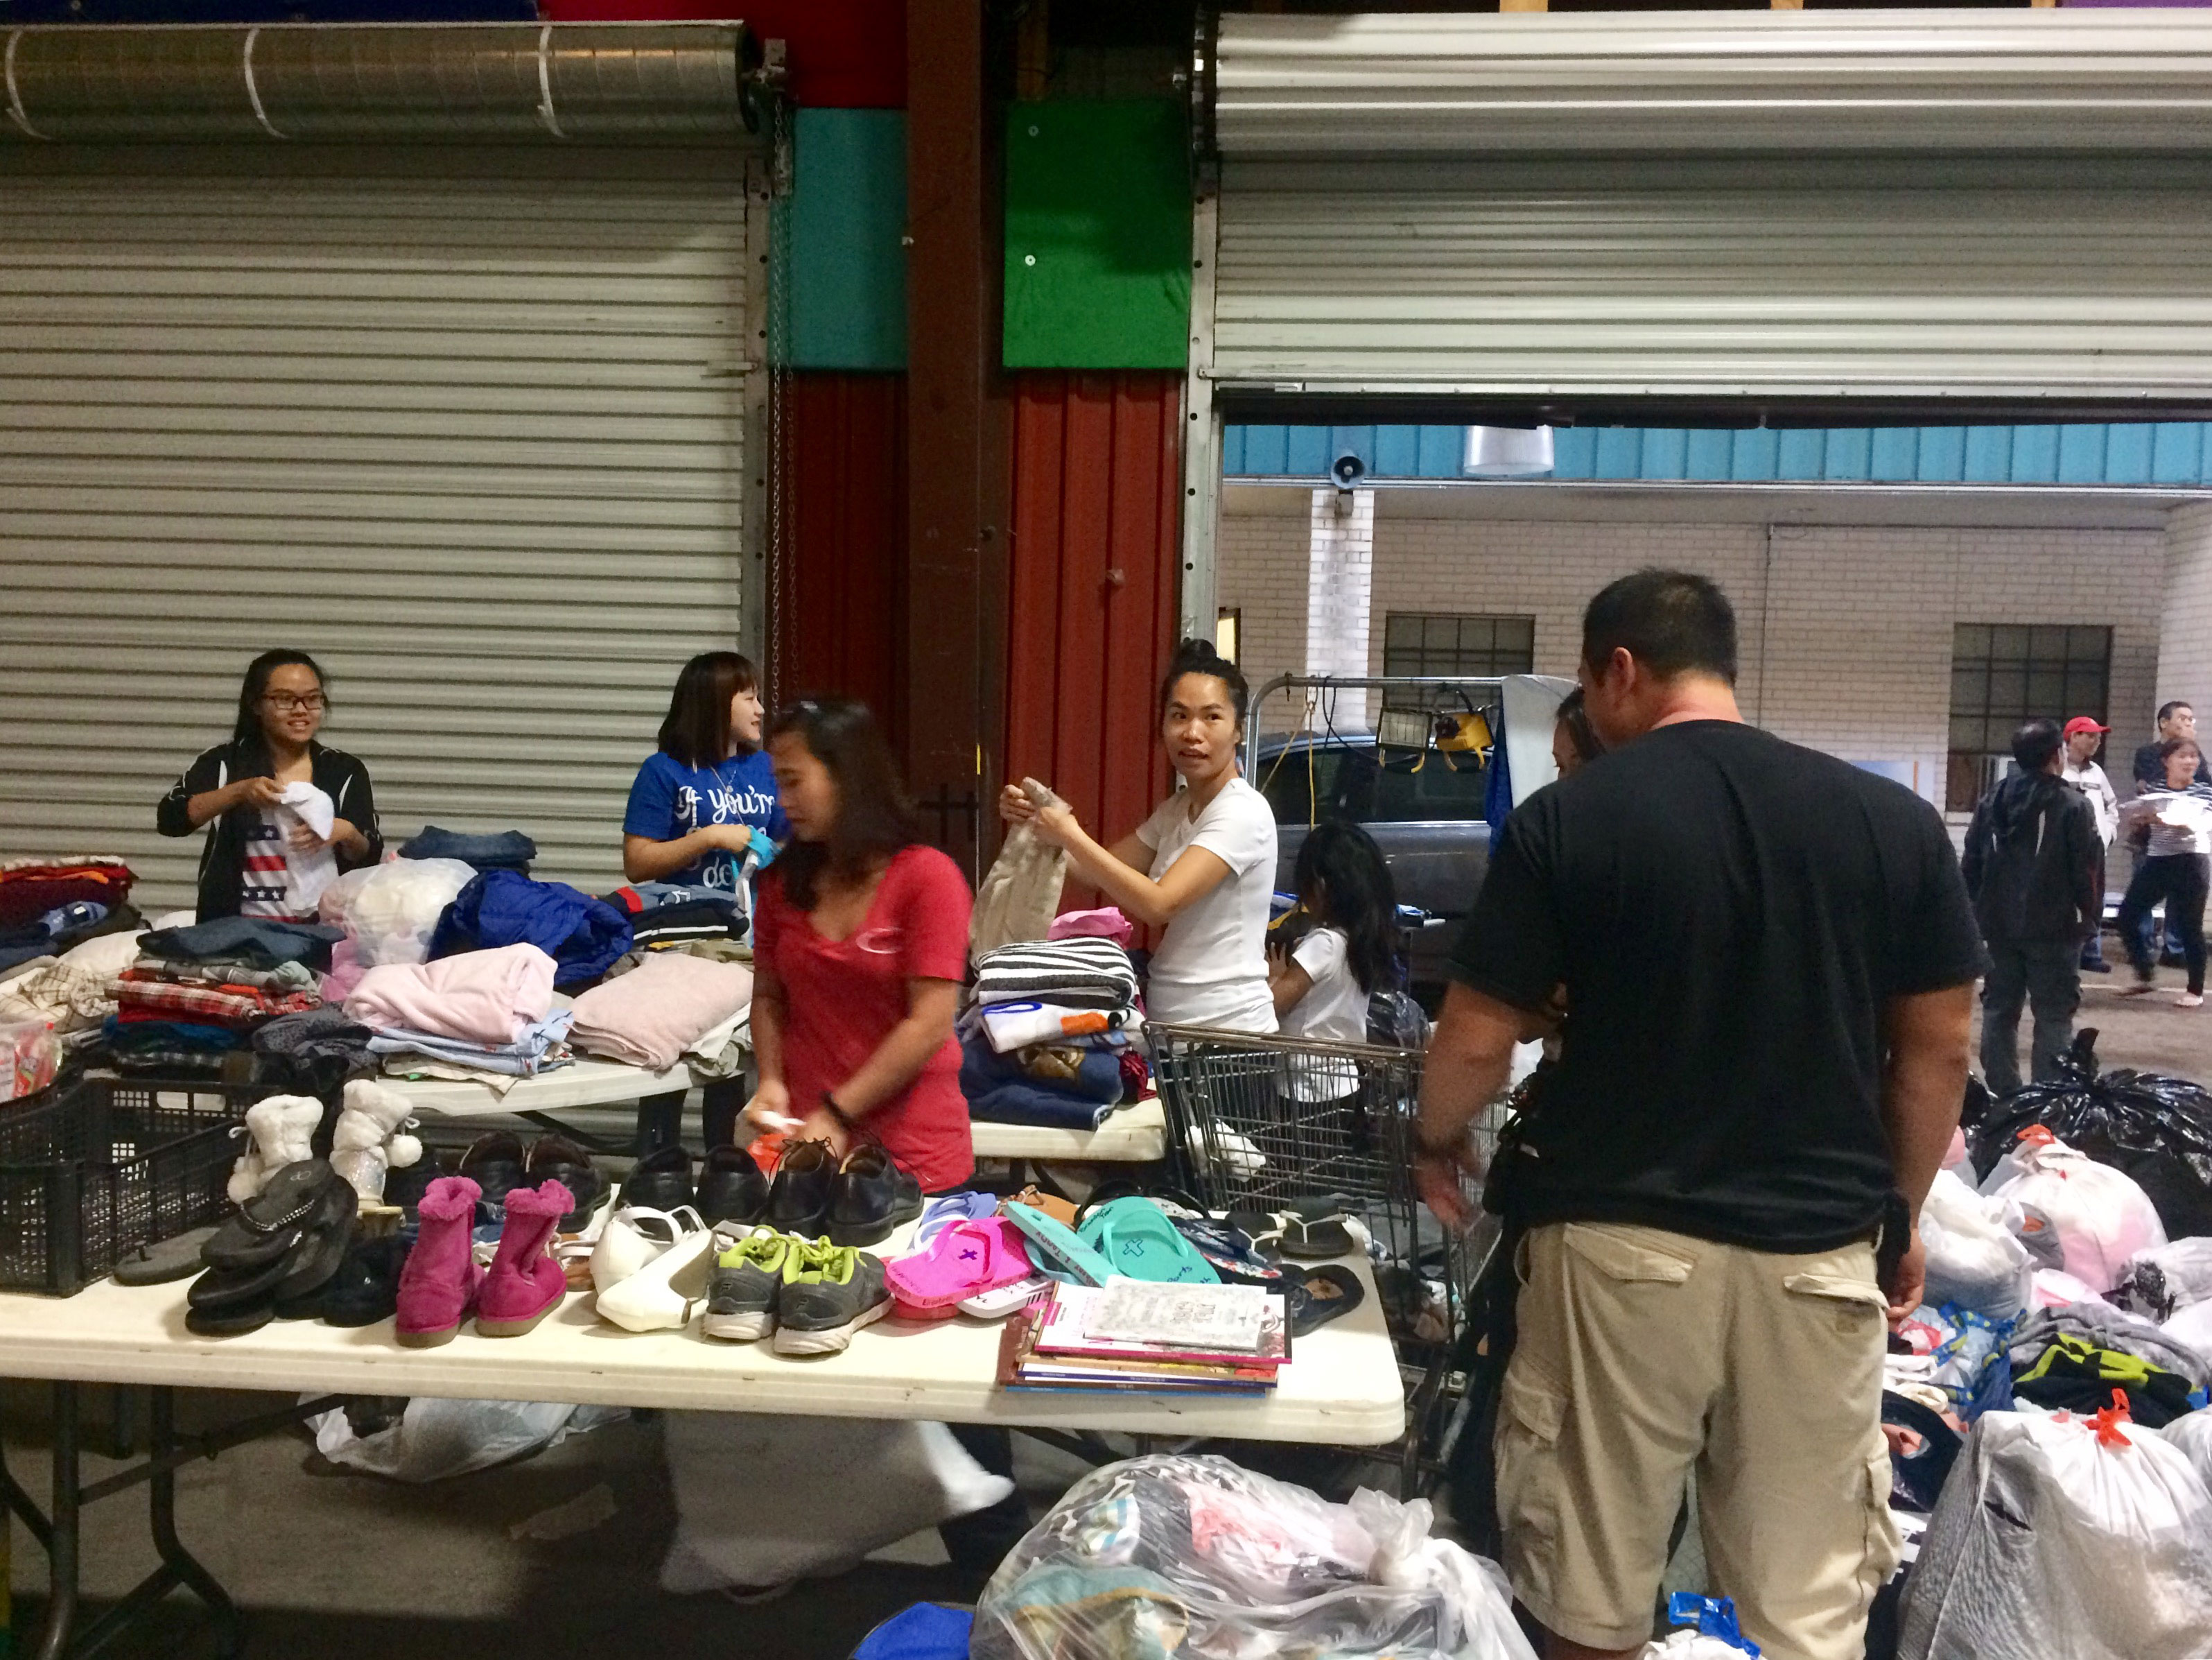 "<div class=""meta image-caption""><div class=""origin-logo origin-image none""><span>none</span></div><span class=""caption-text"">Volunteers sort through donations in this viewer-submitted photo. (Uyen Do)</span></div>"